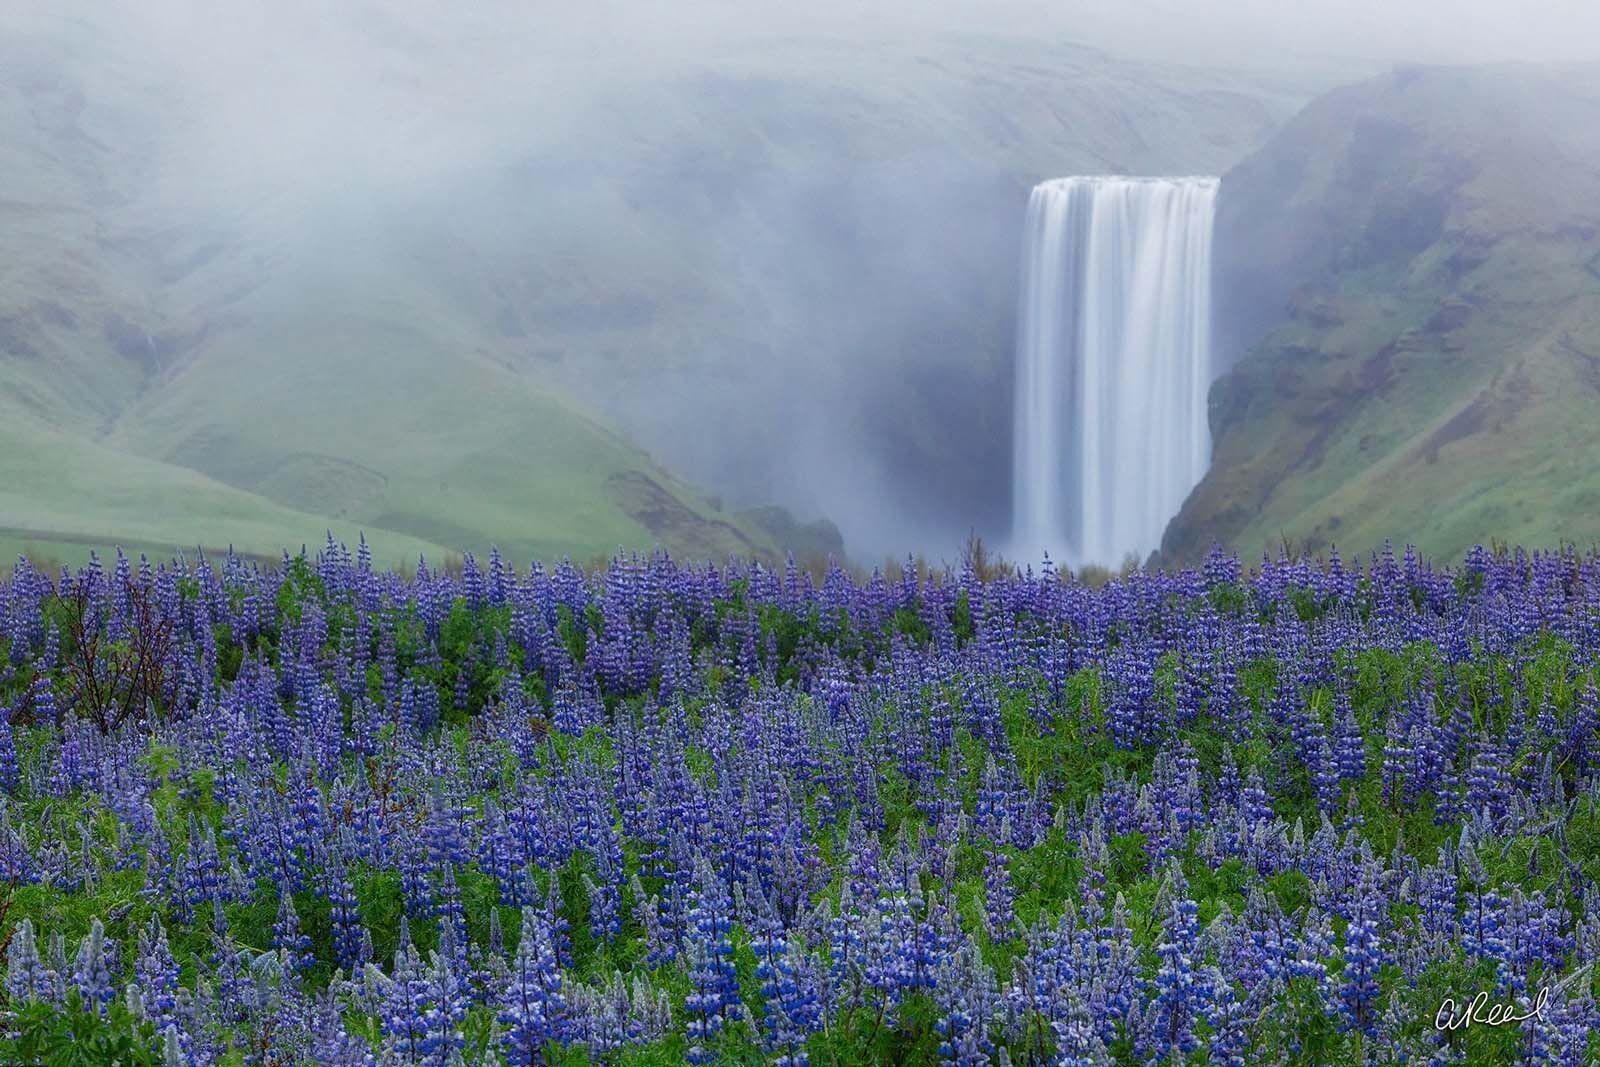 Fine Art Limited Edition of 50 - The Skógafoss is one of the biggest waterfalls in the country with a width of 15 metres...